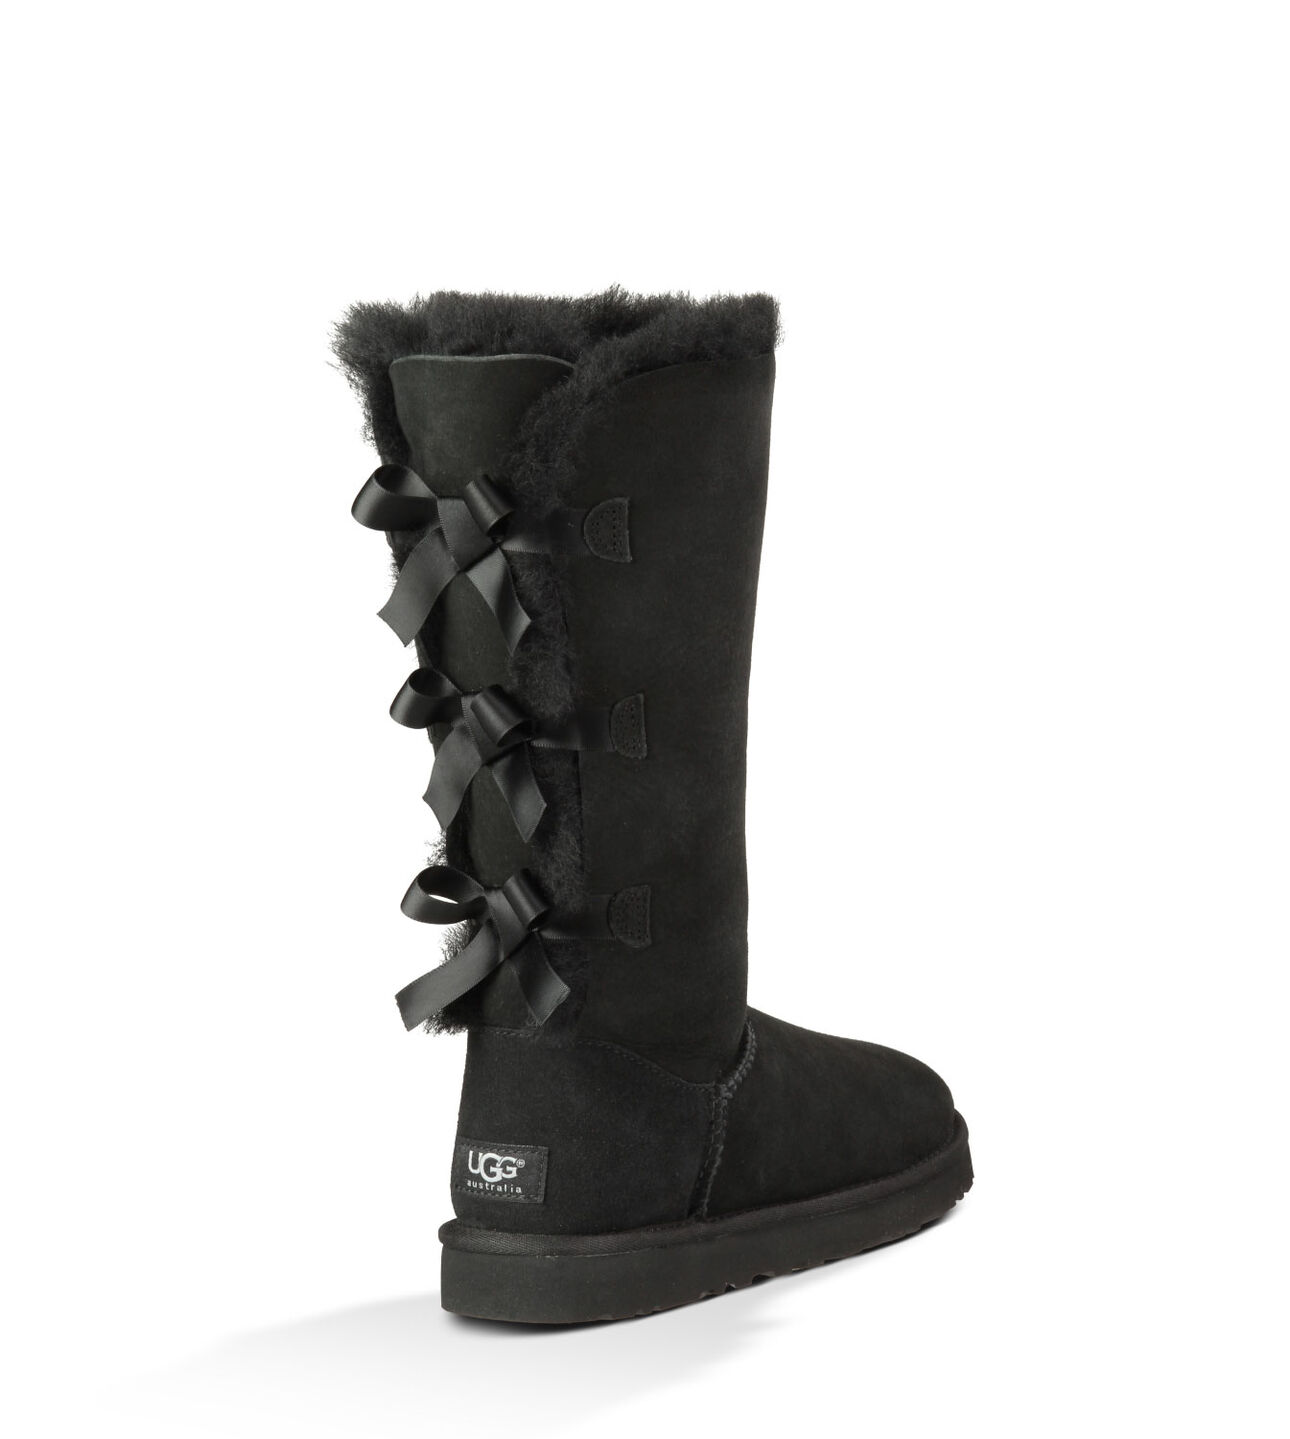 ugg boots for girl